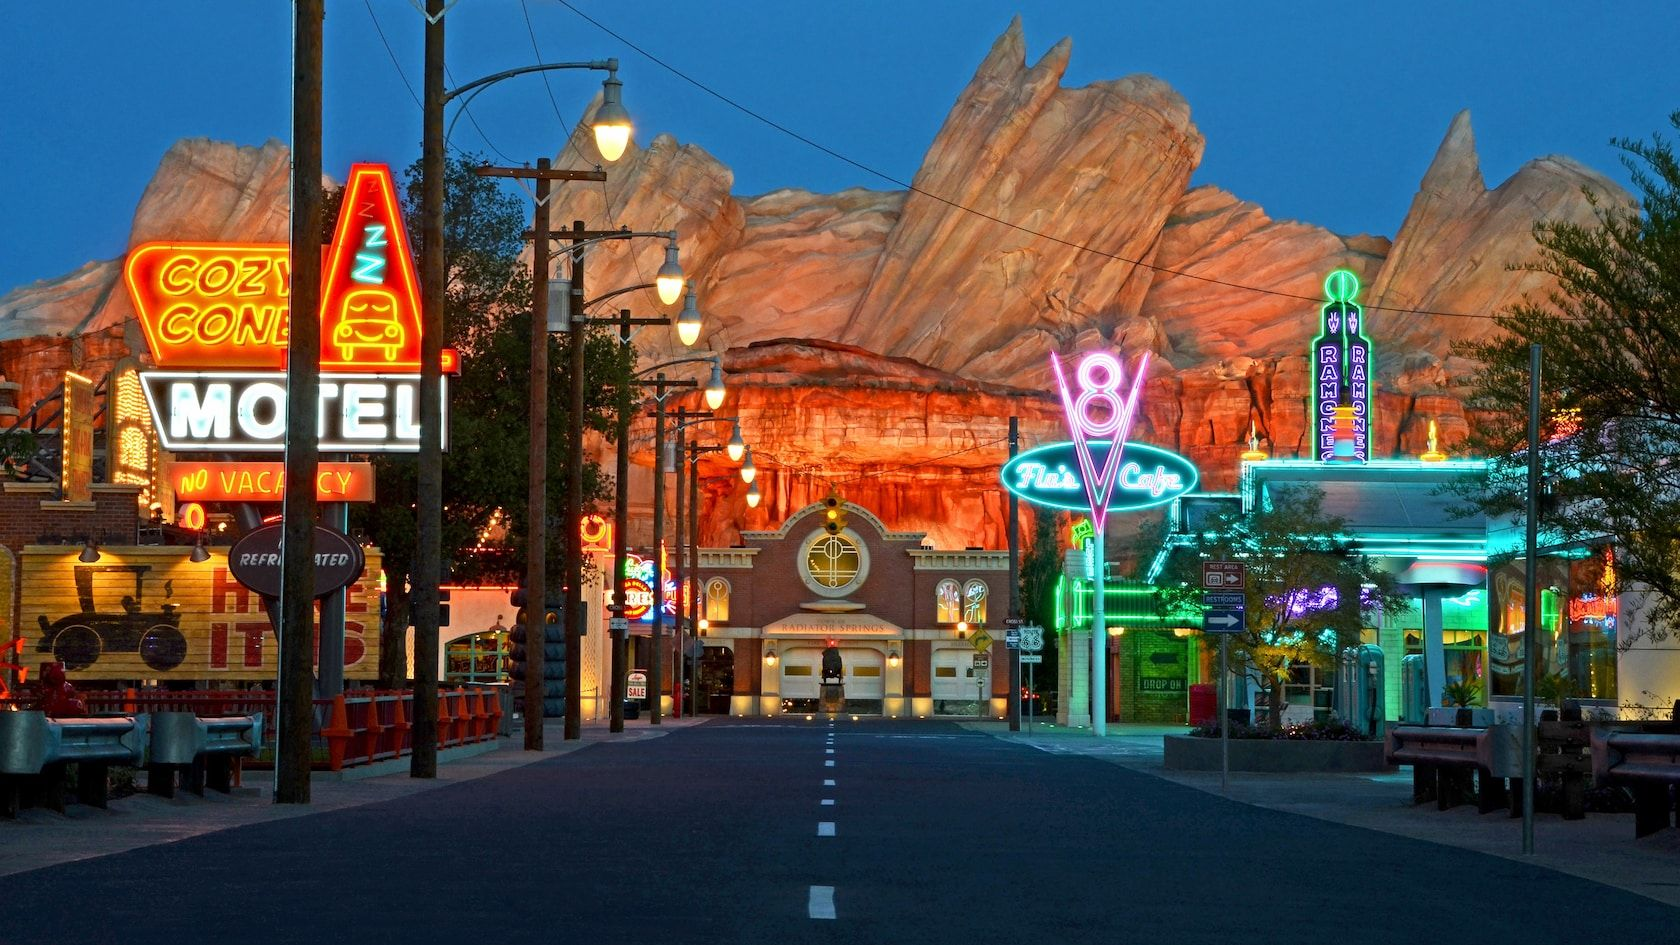 Cars land is designed as a lifesize model and near exact